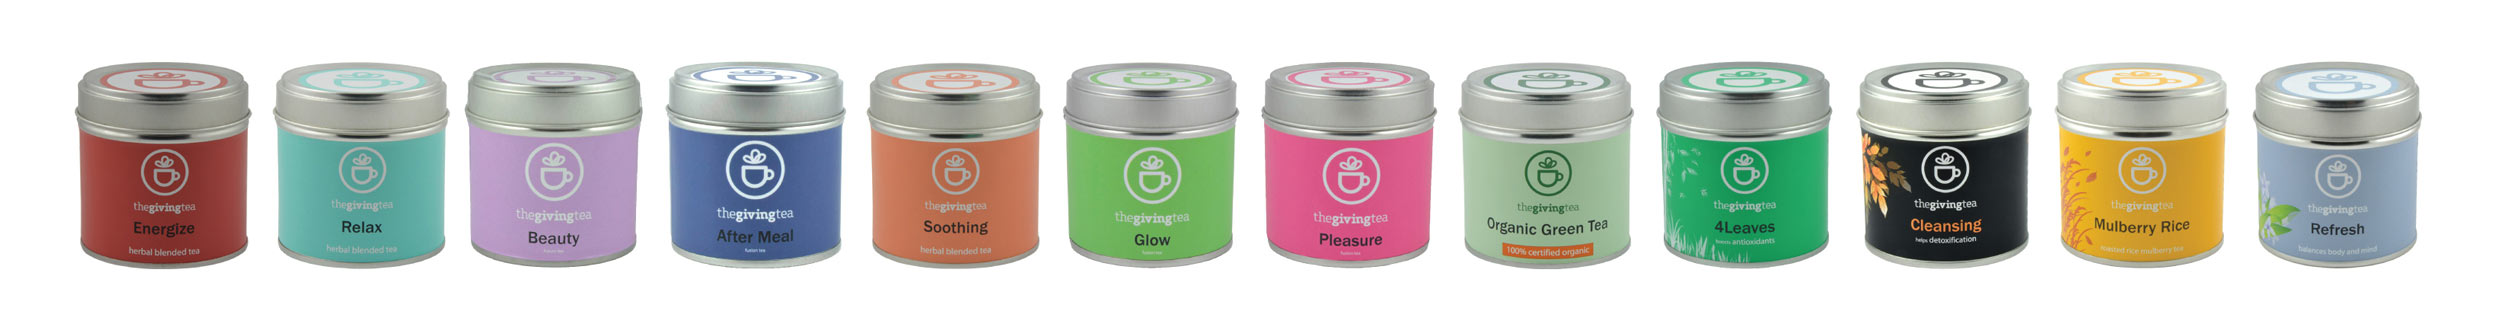 The Giving Tea product line